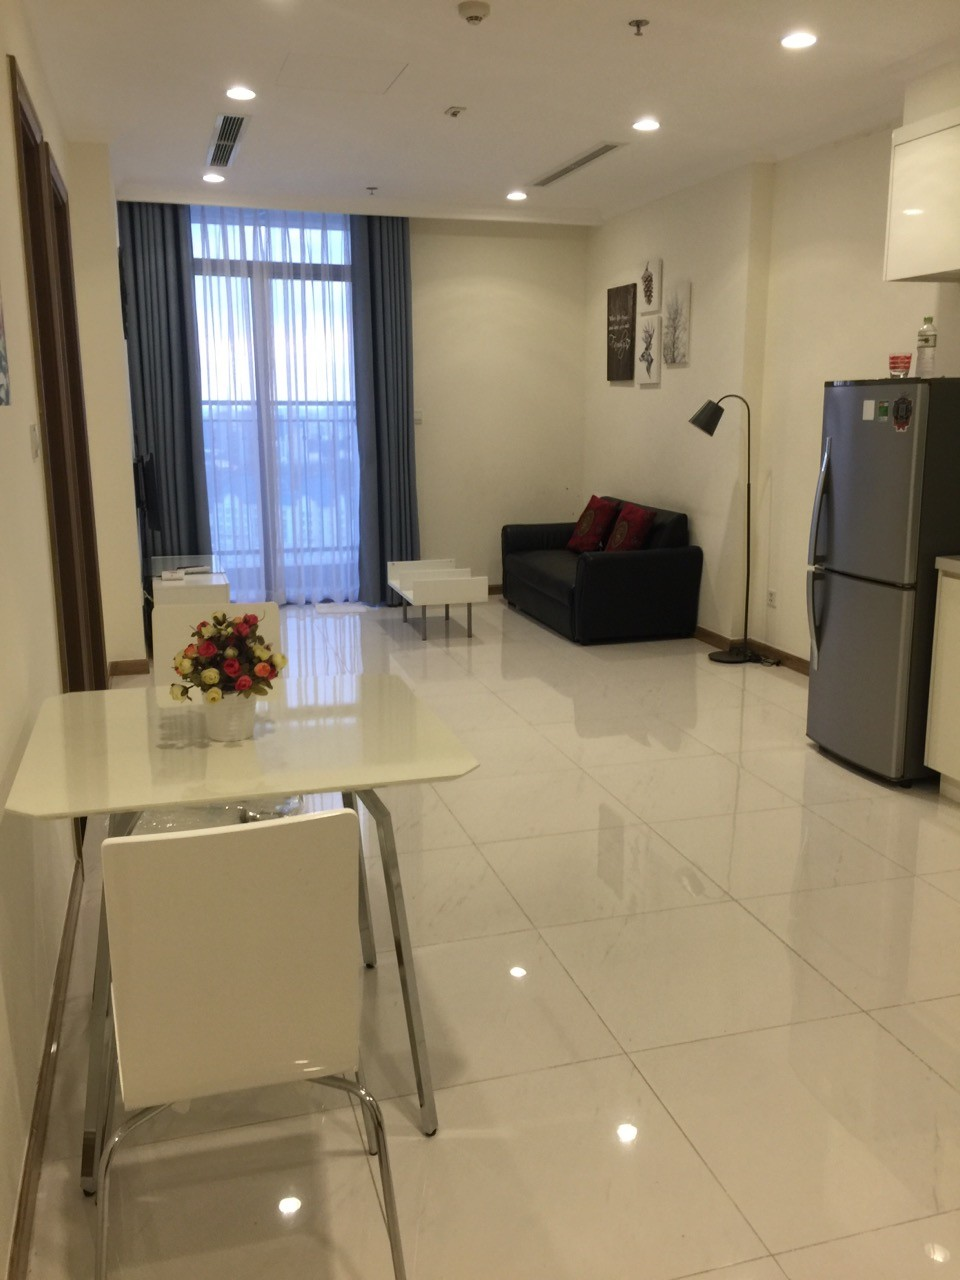 vinhomes central park apartment for rent in binh thanh district hcmc BT105L3877 (2)